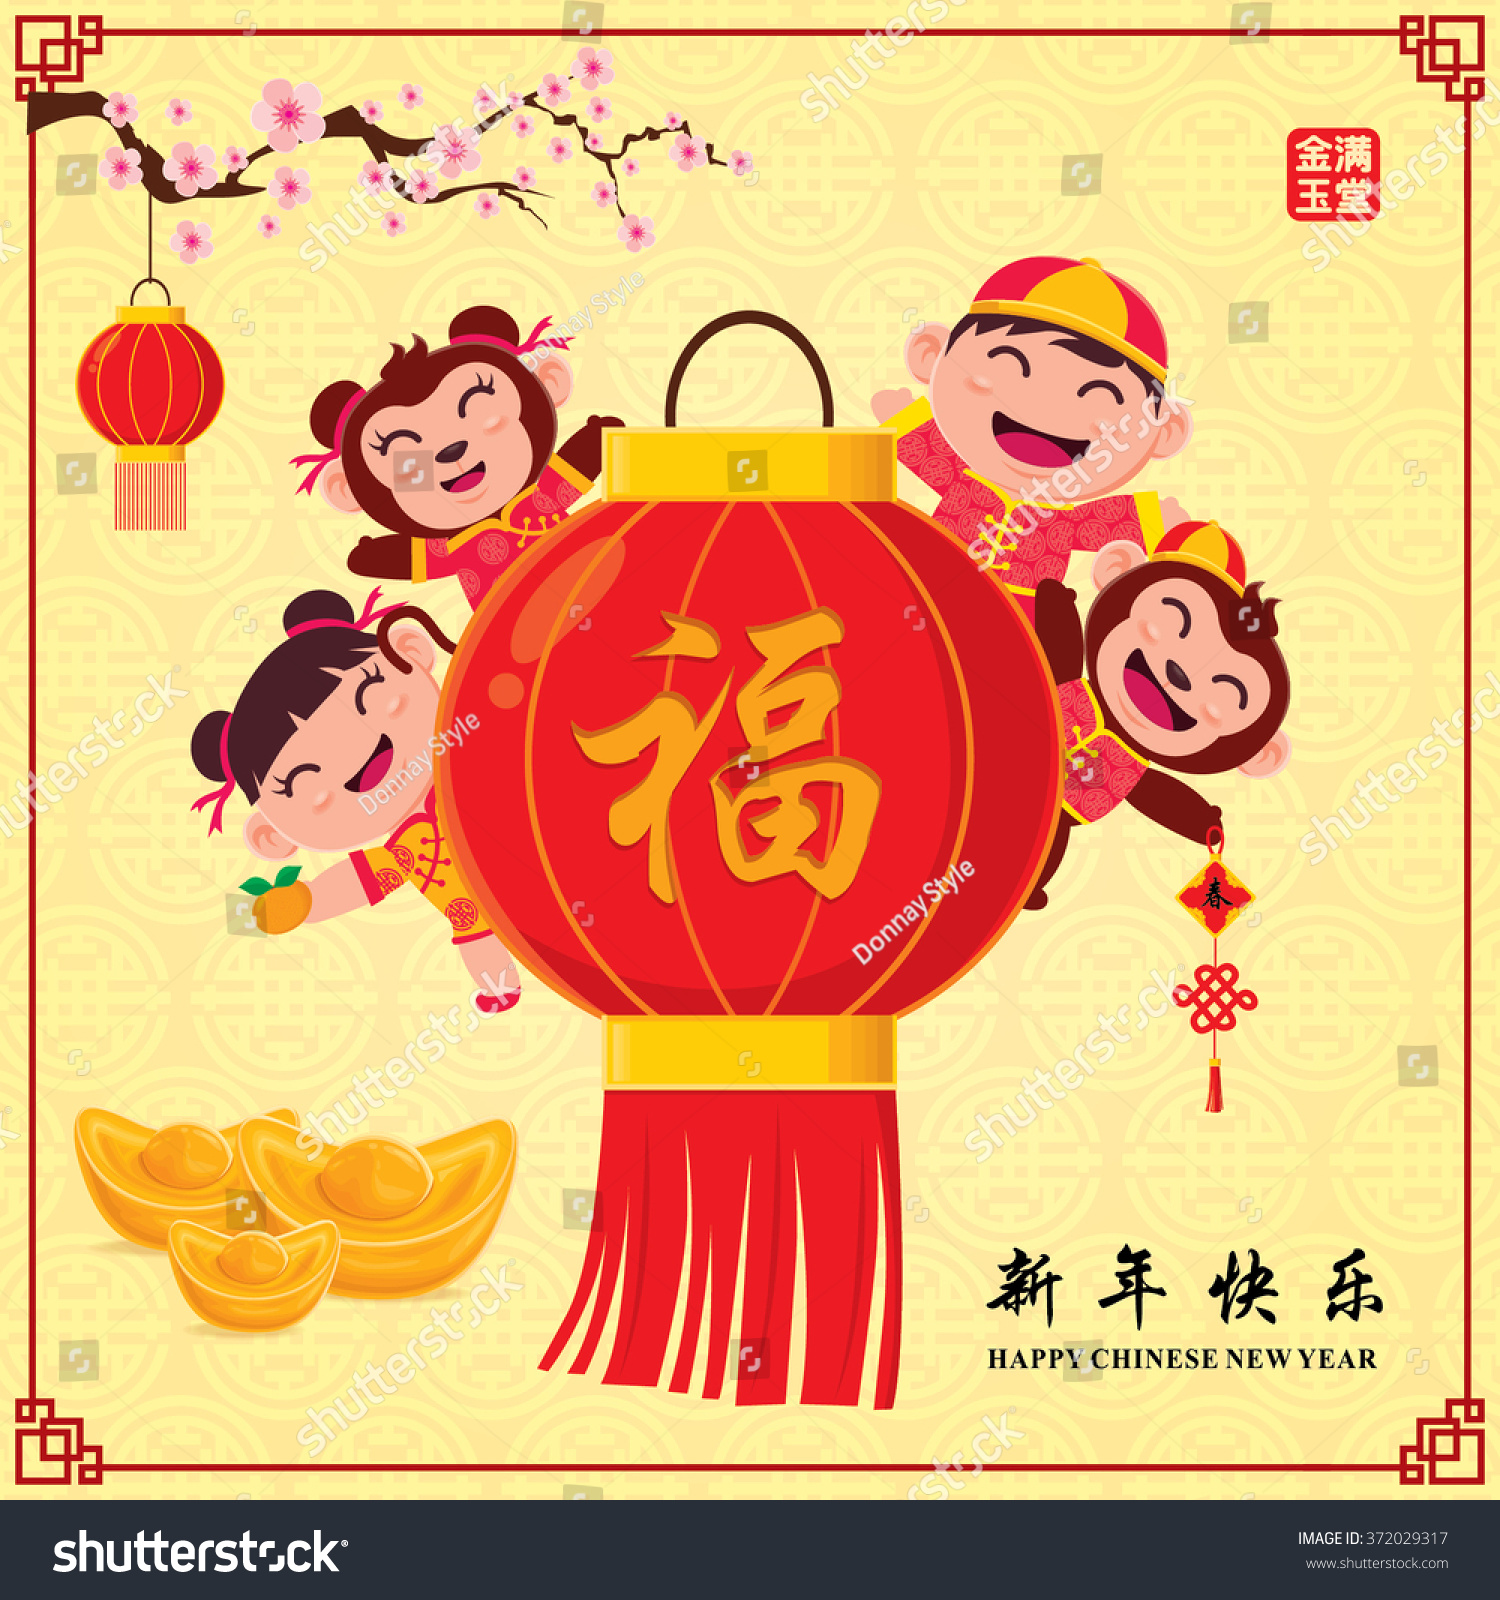 8d965359e Vintage Chinese new year poster design with Chinese zodiac monkey, Chinese  wording meanings: Wishing.